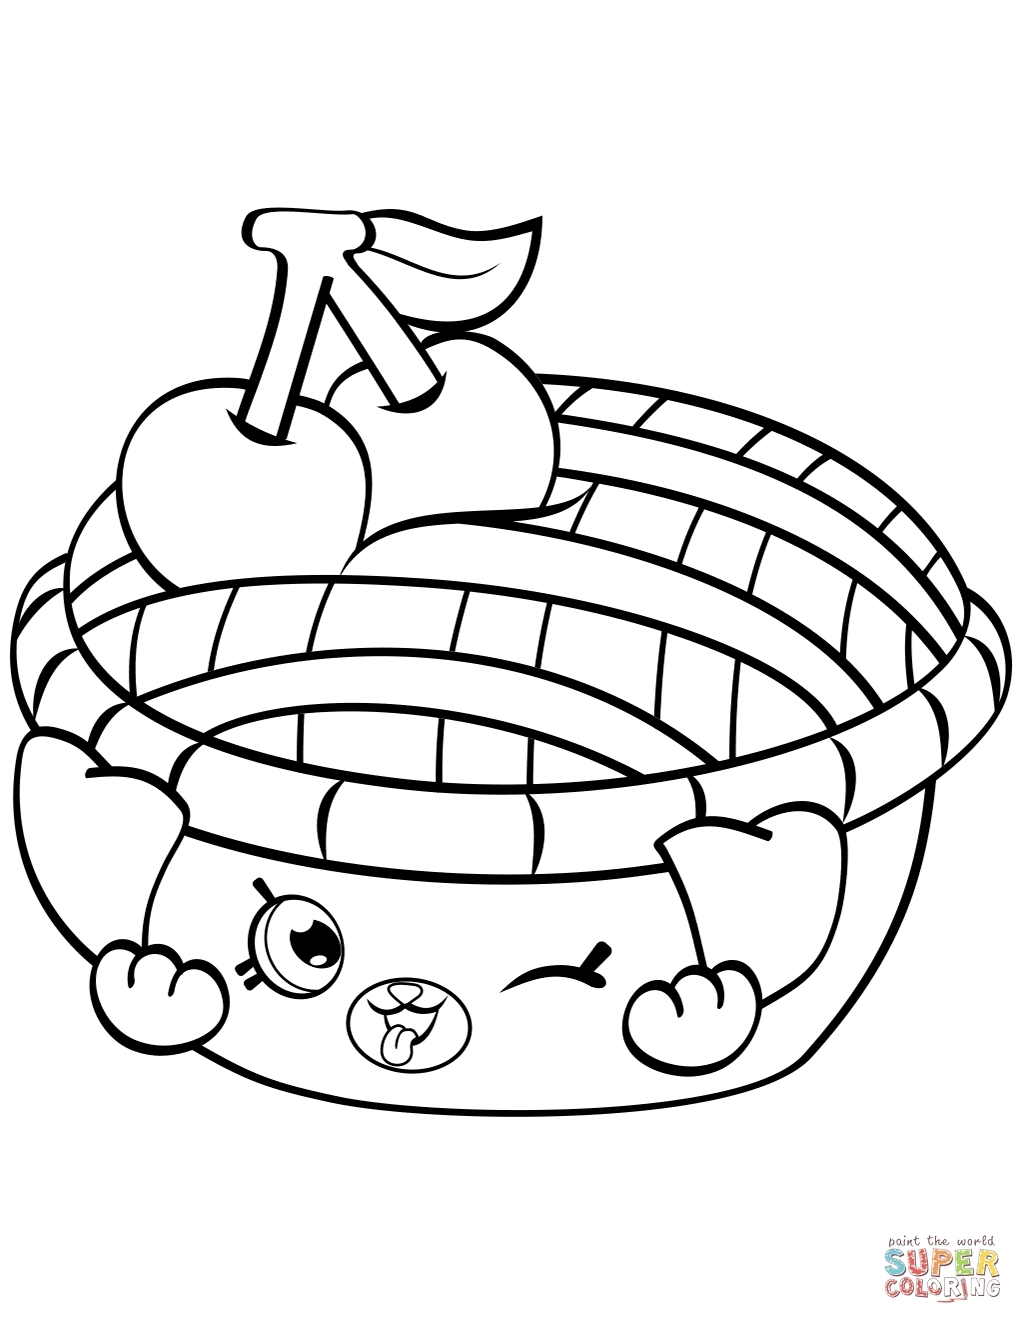 shopkins coloring pages - shopkins freee coloring sheets free 6 2